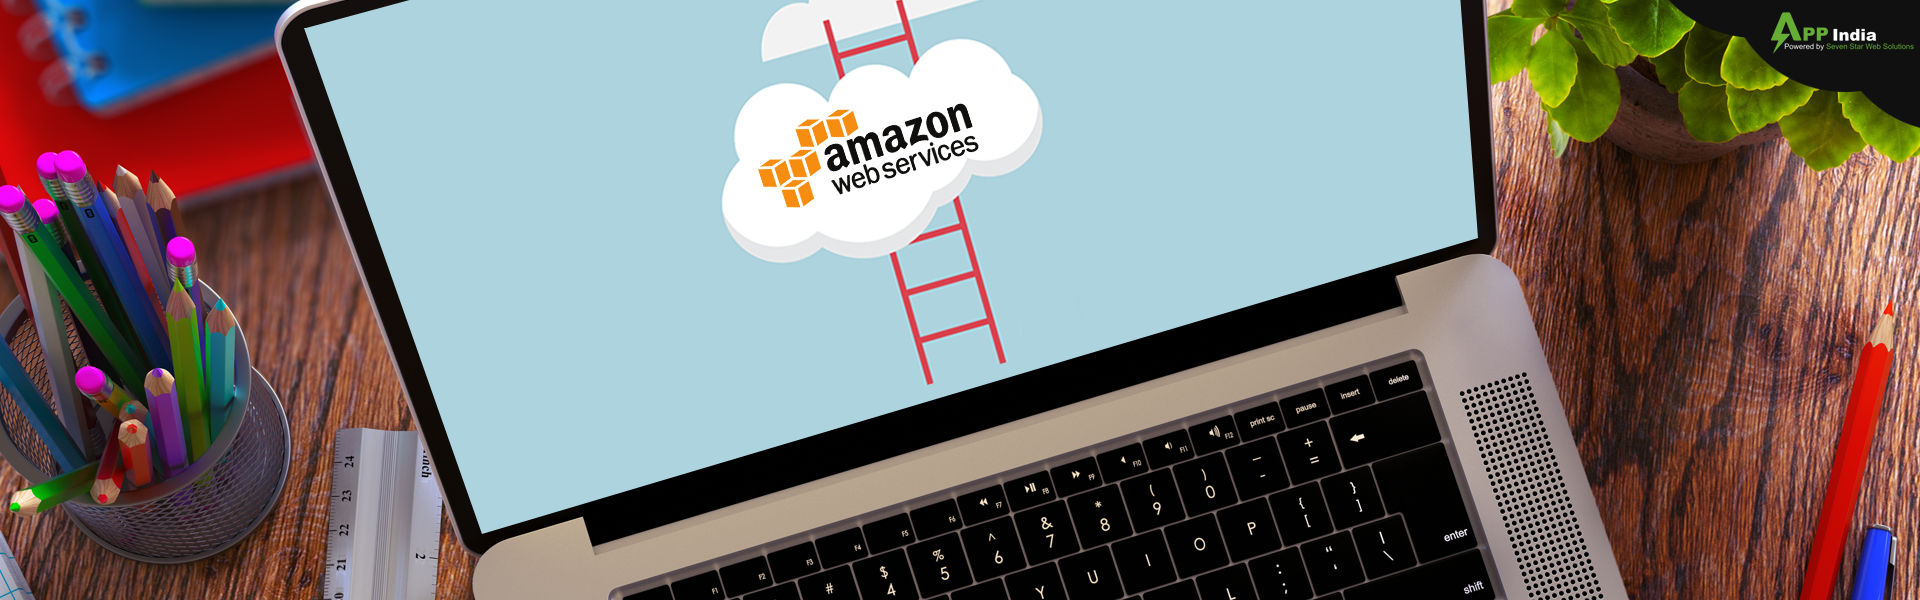 Amazon Cloud Migration